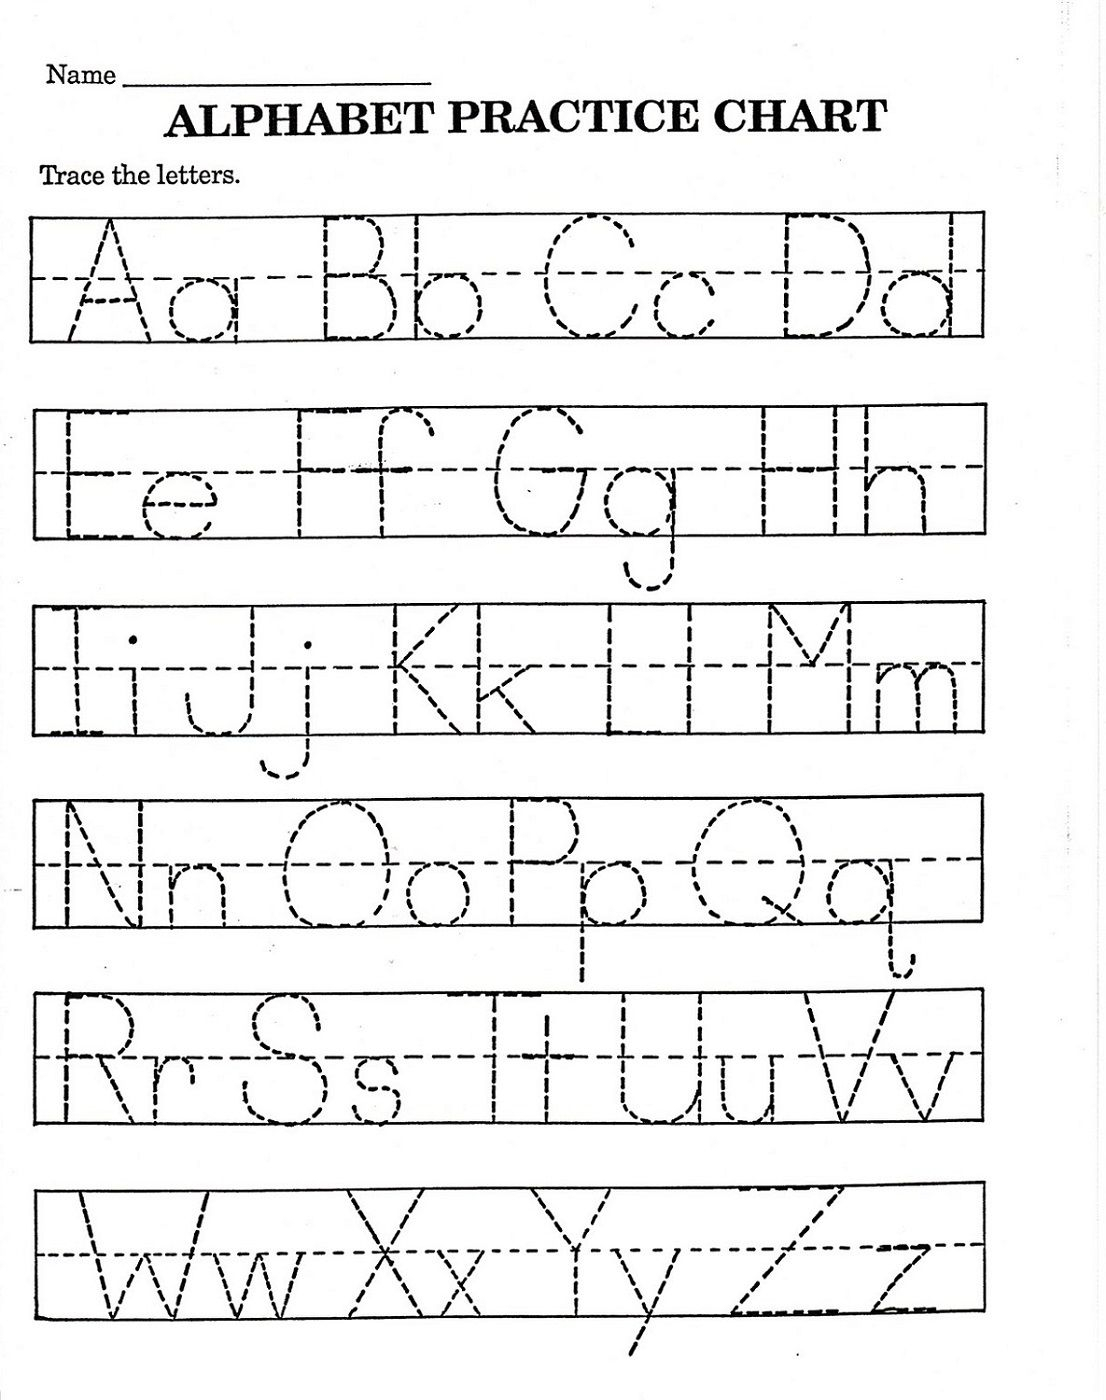 Trace Letter Worksheets Free | Alphabet Tracing Worksheets with regard to Free Printable Pre-K Alphabet Worksheets